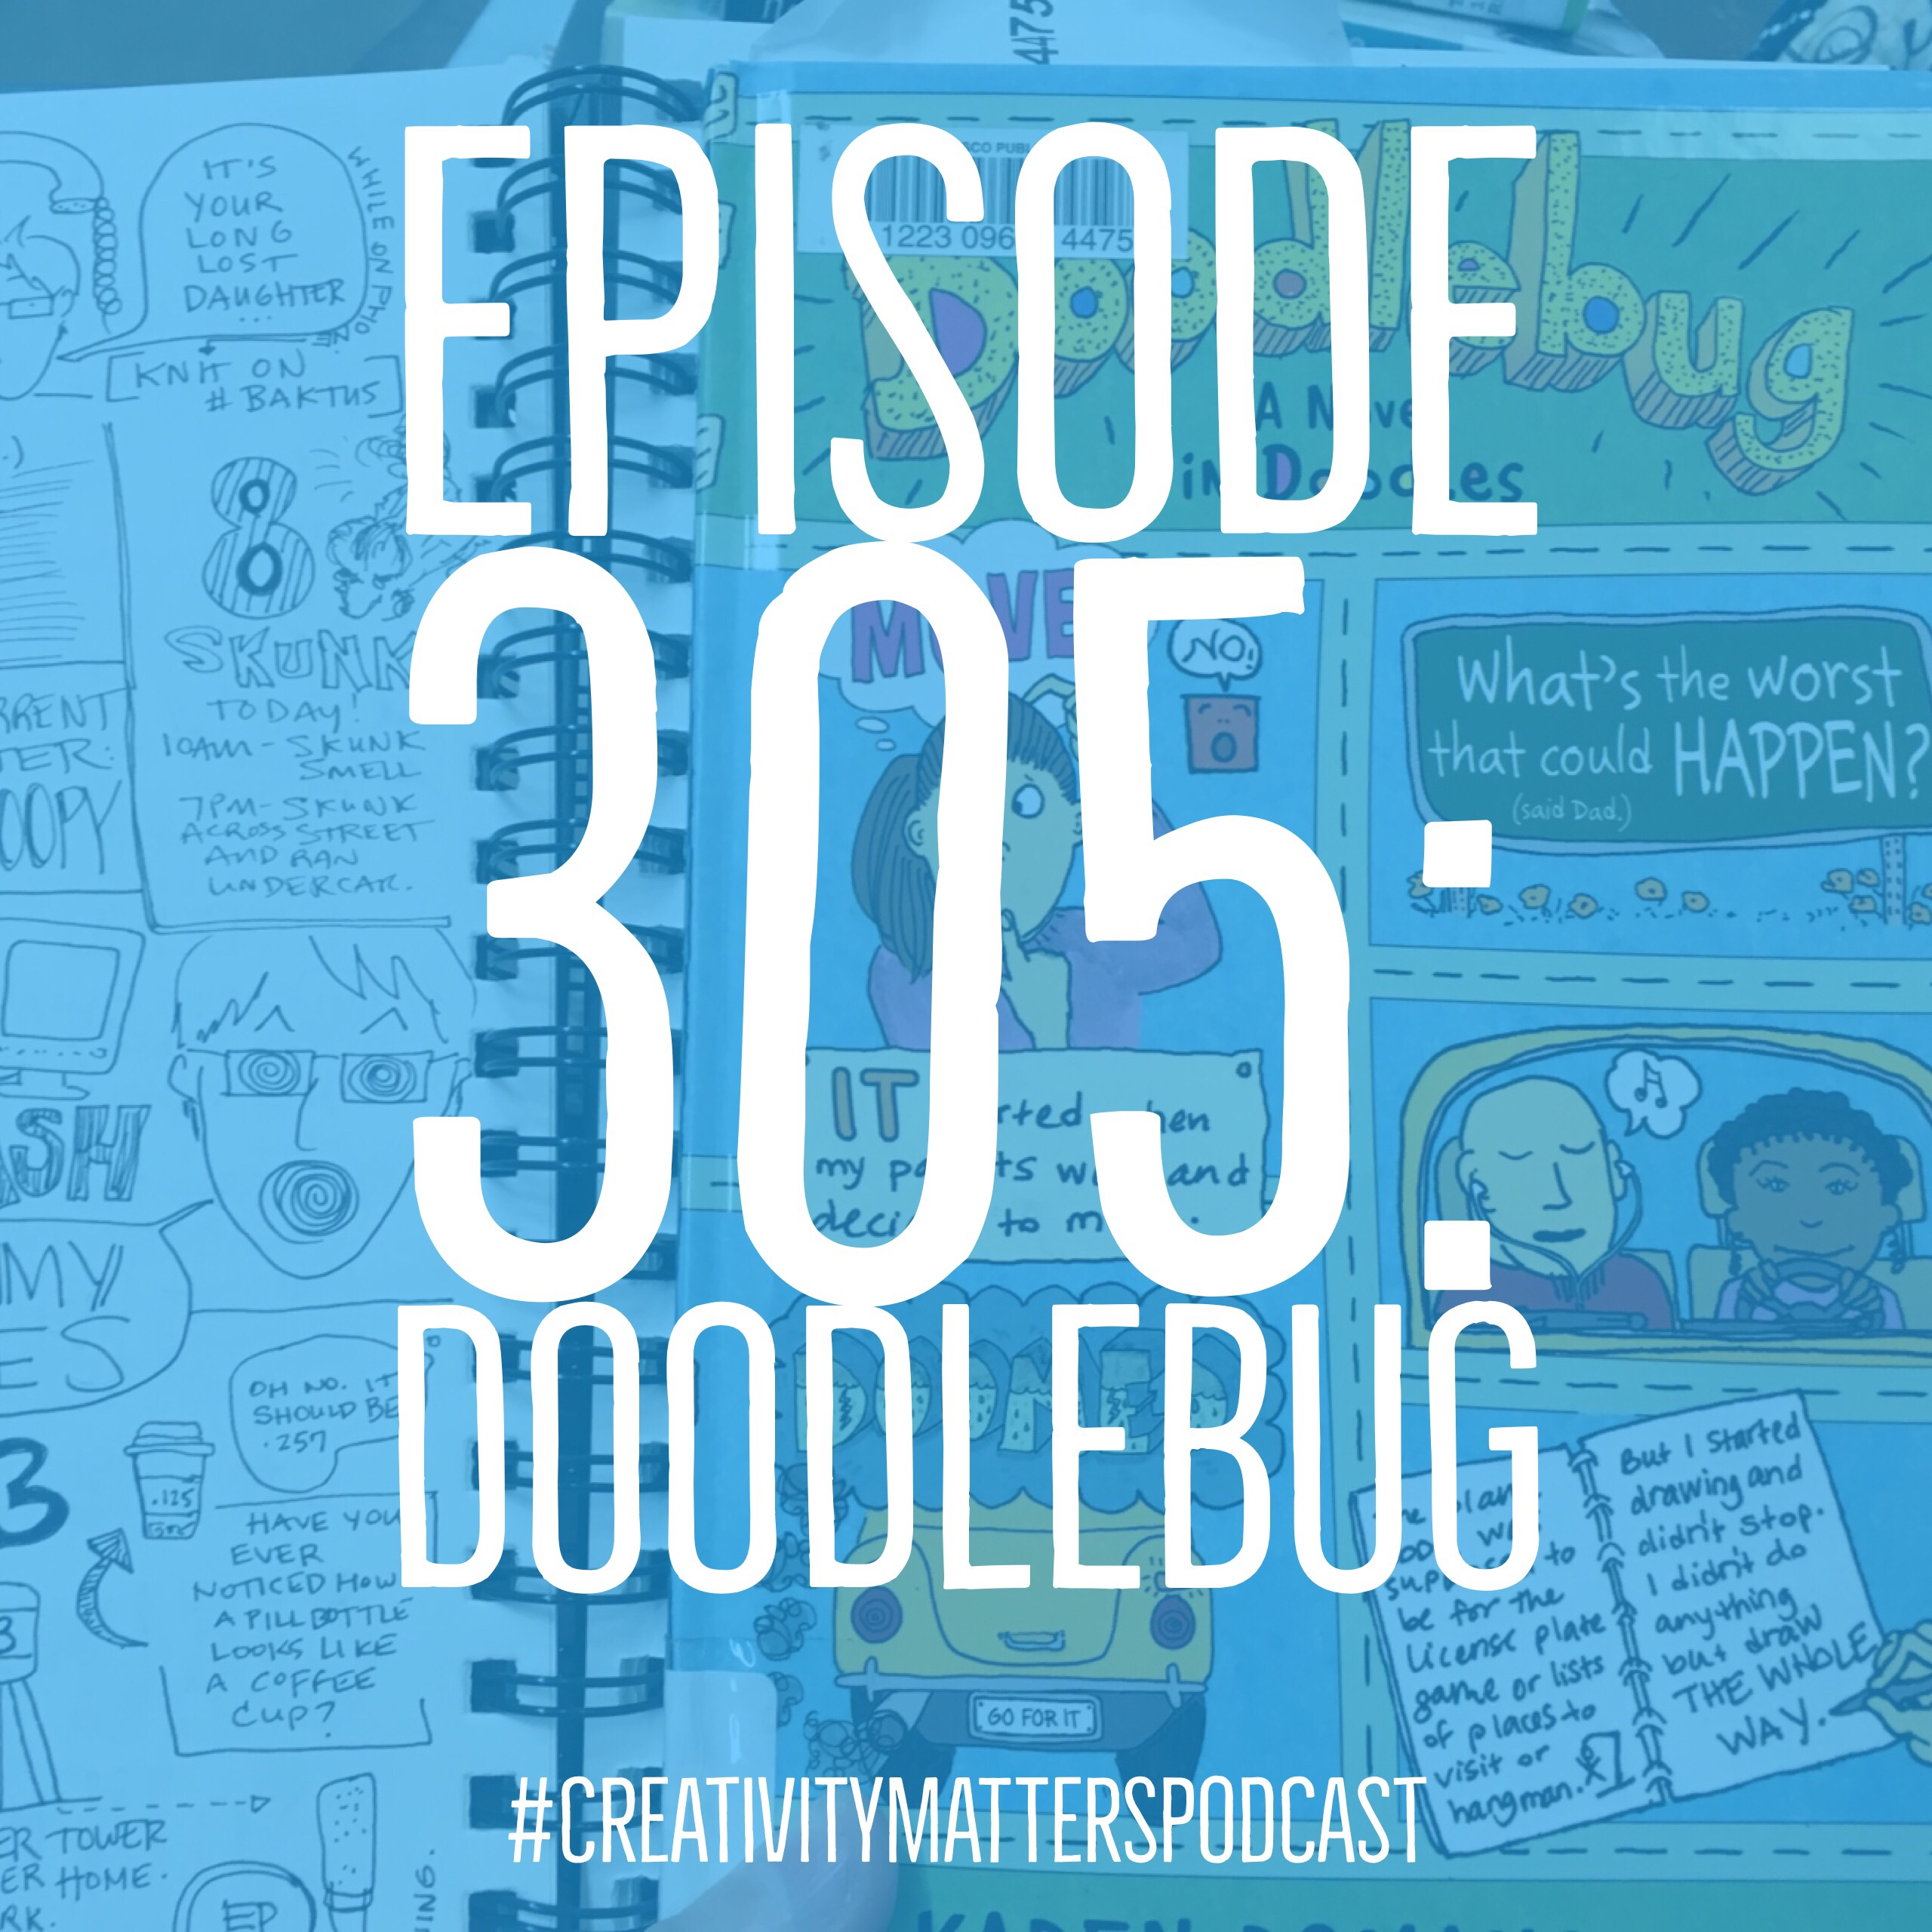 Episode 305: Doodlebug